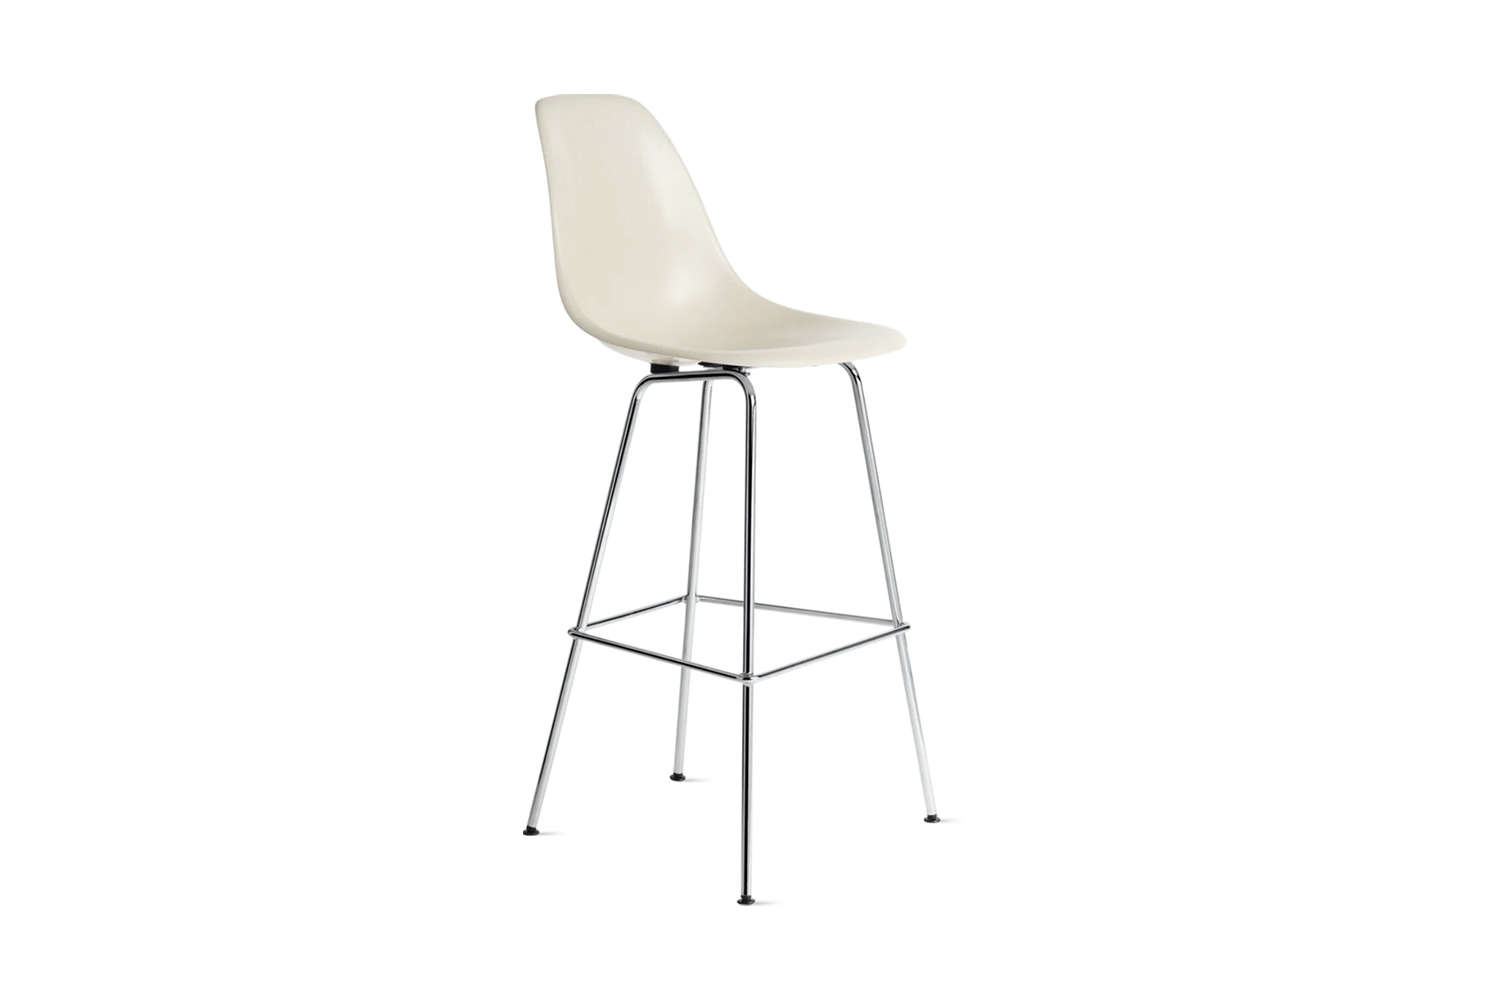 the eames shell counter height stool is \$545 at design within reach. 15